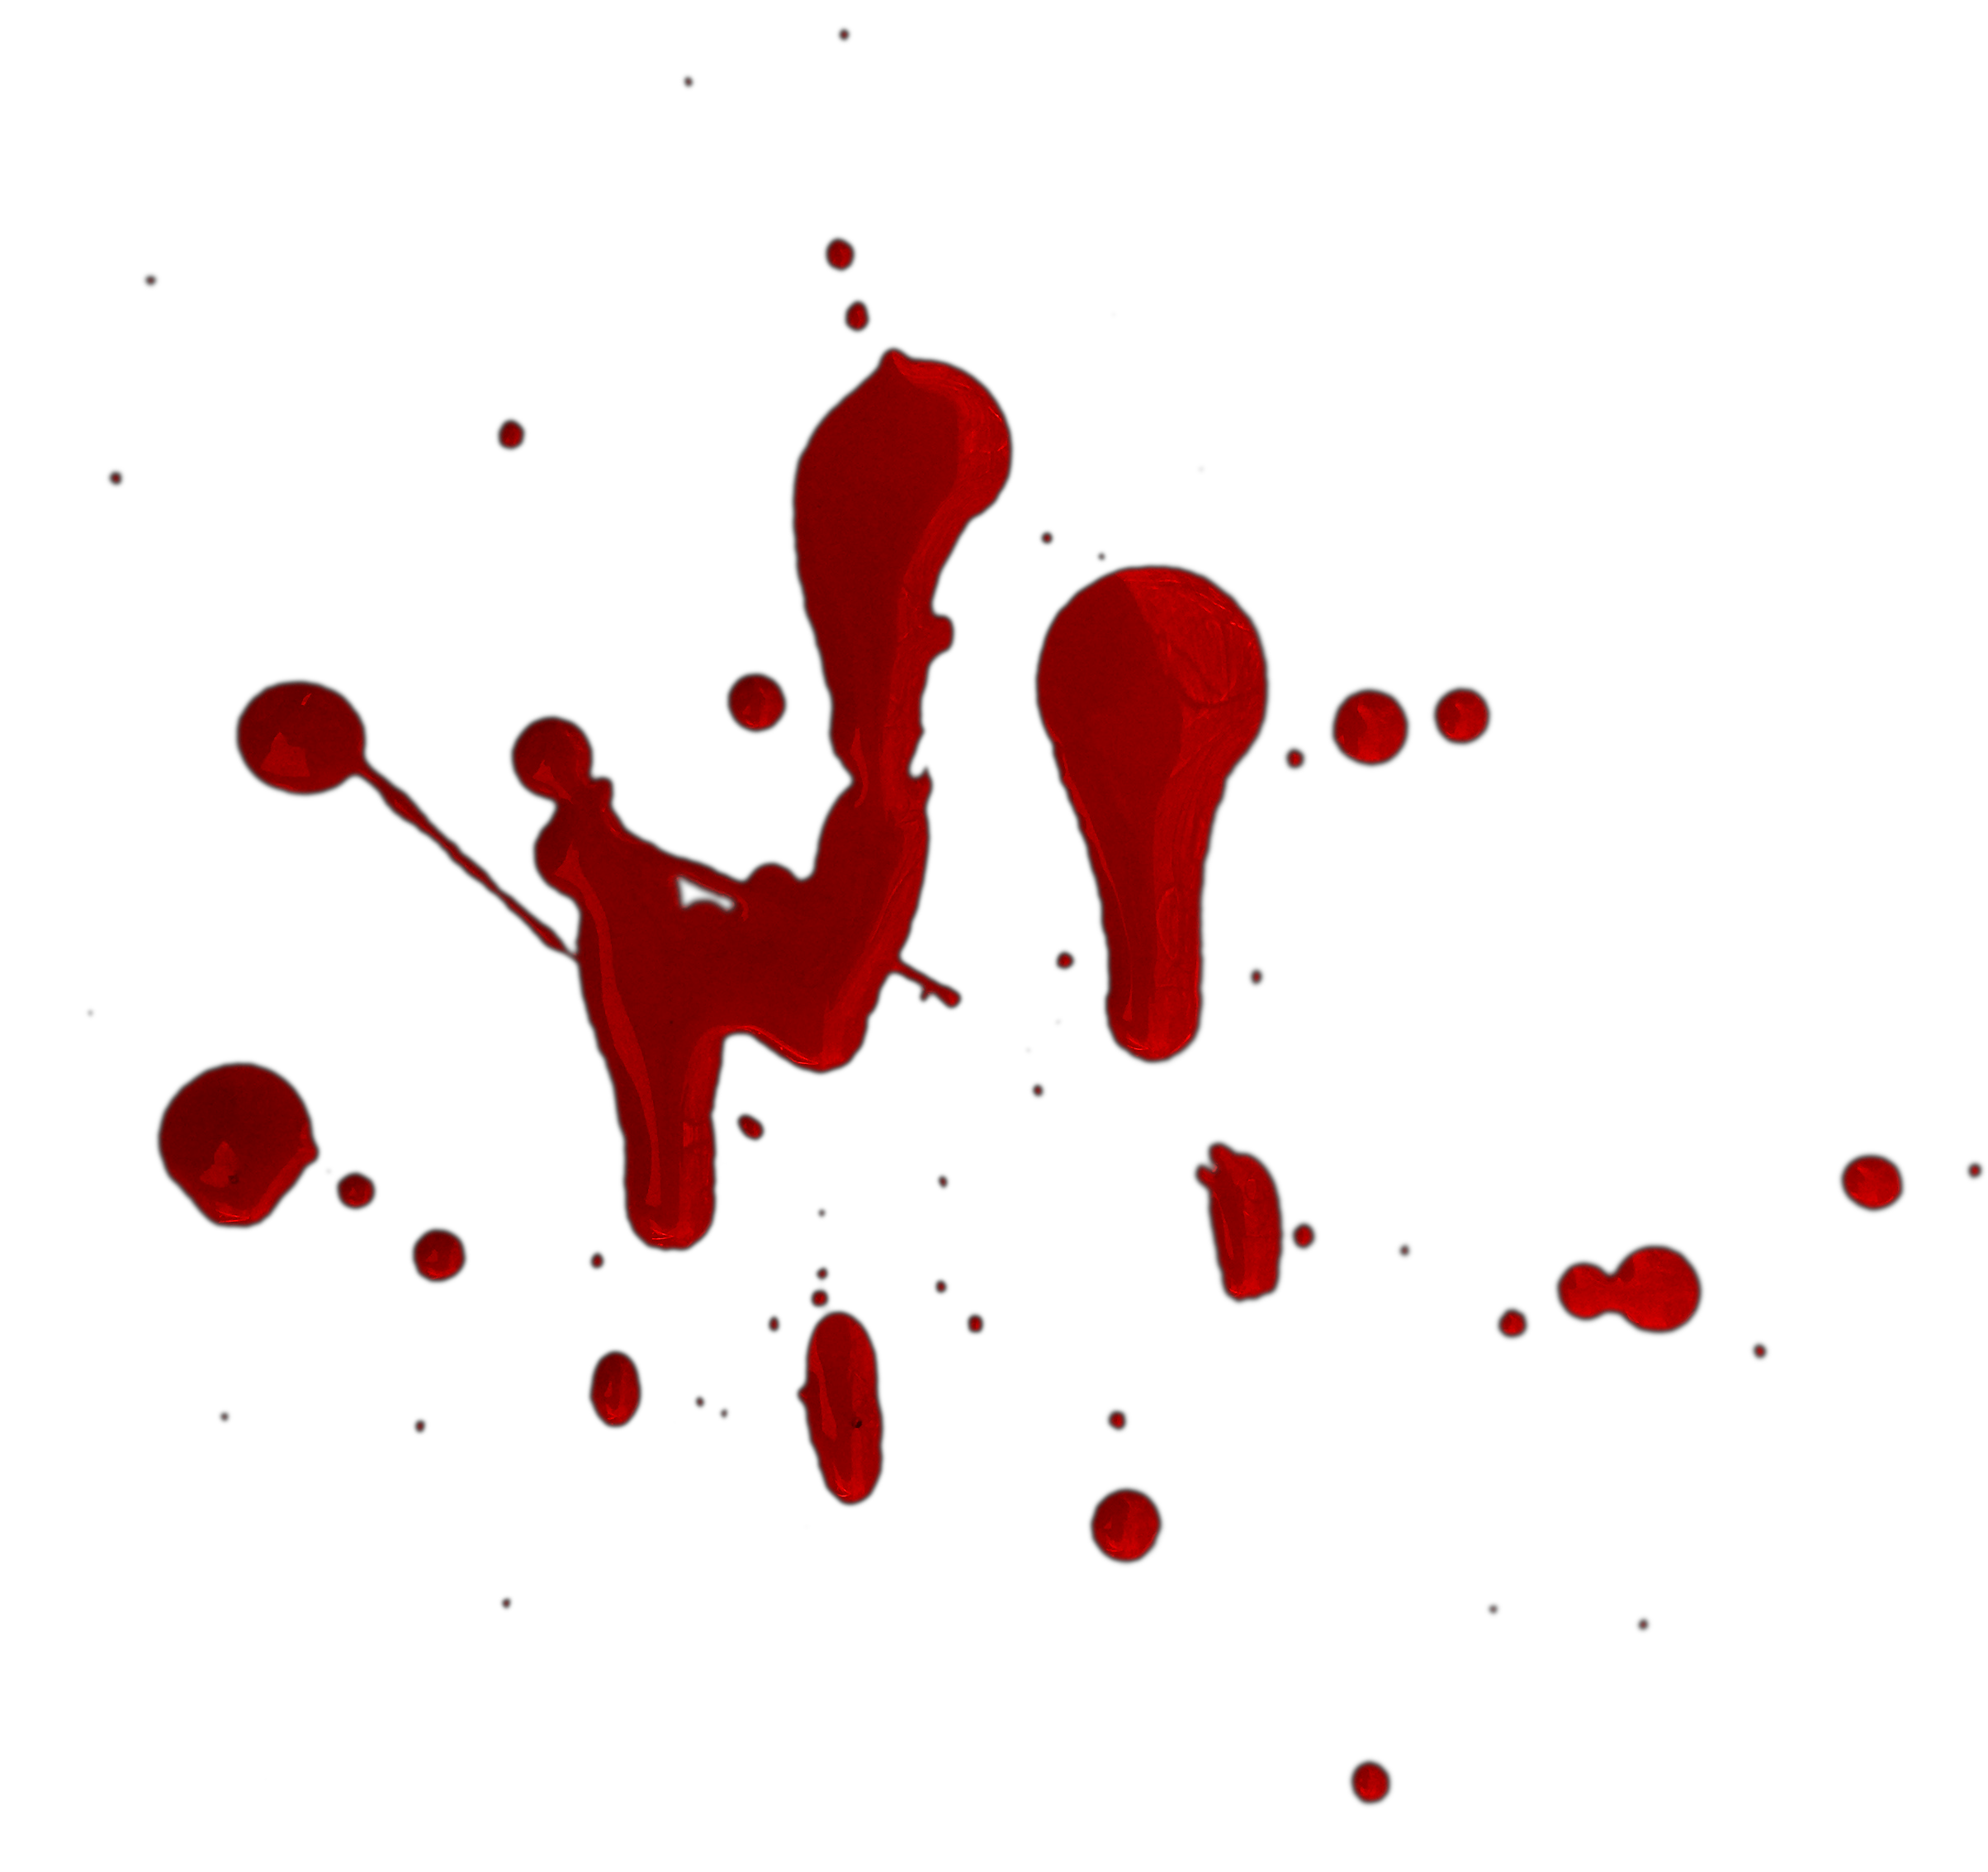 Blood drip transparent png. Download high quality free